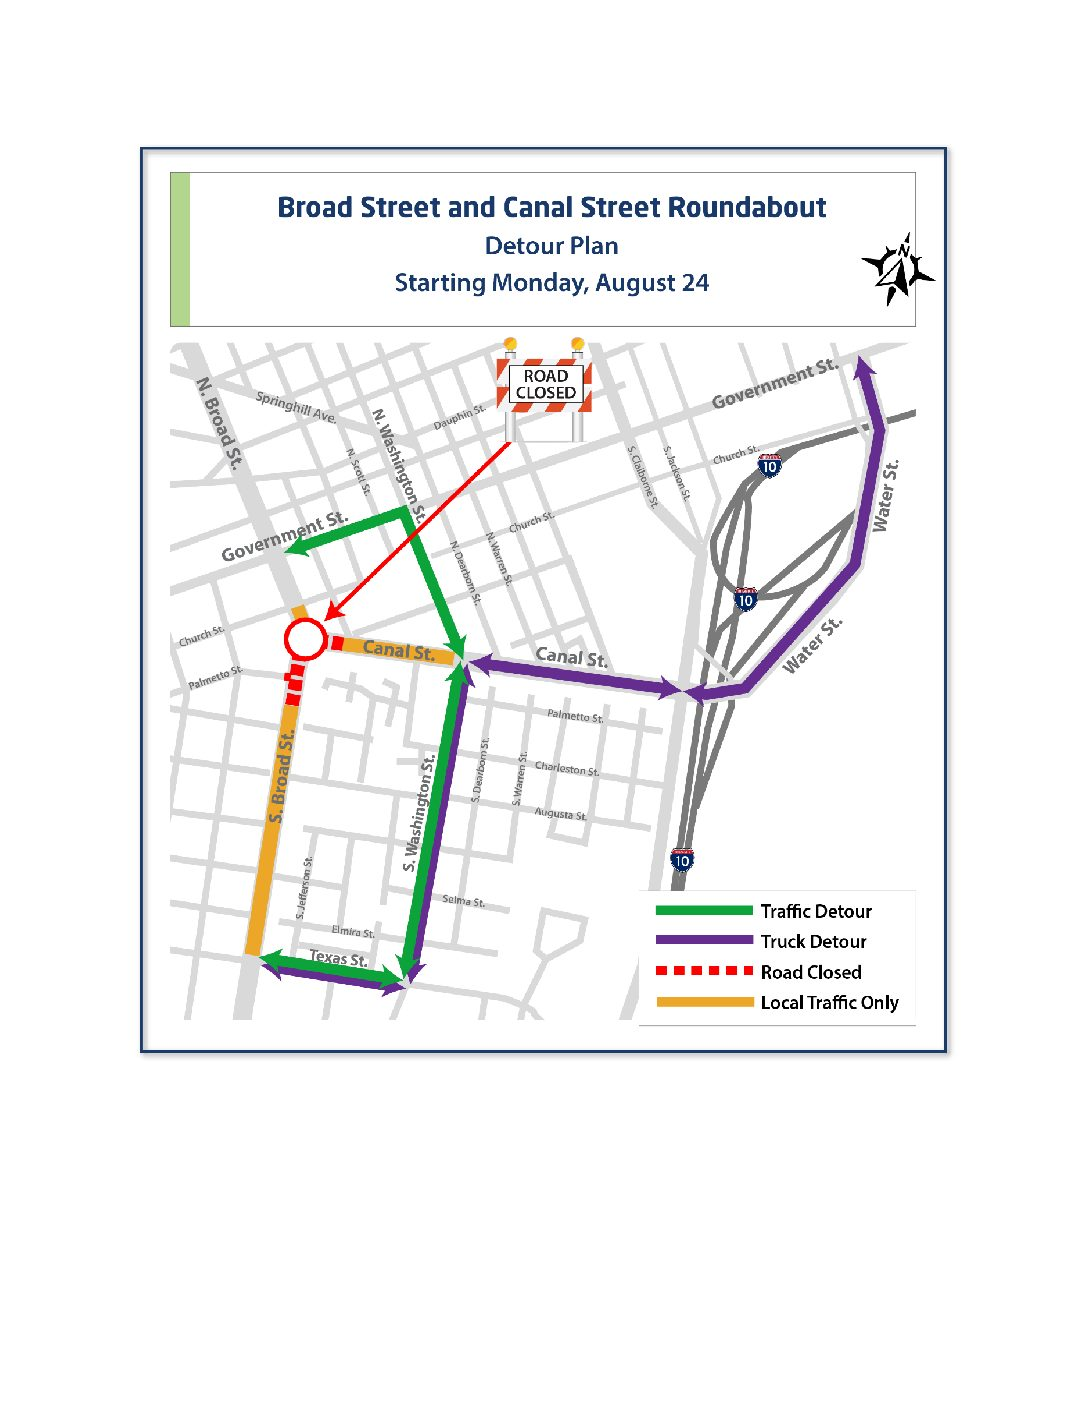 Broad Street to close for roundabout construction